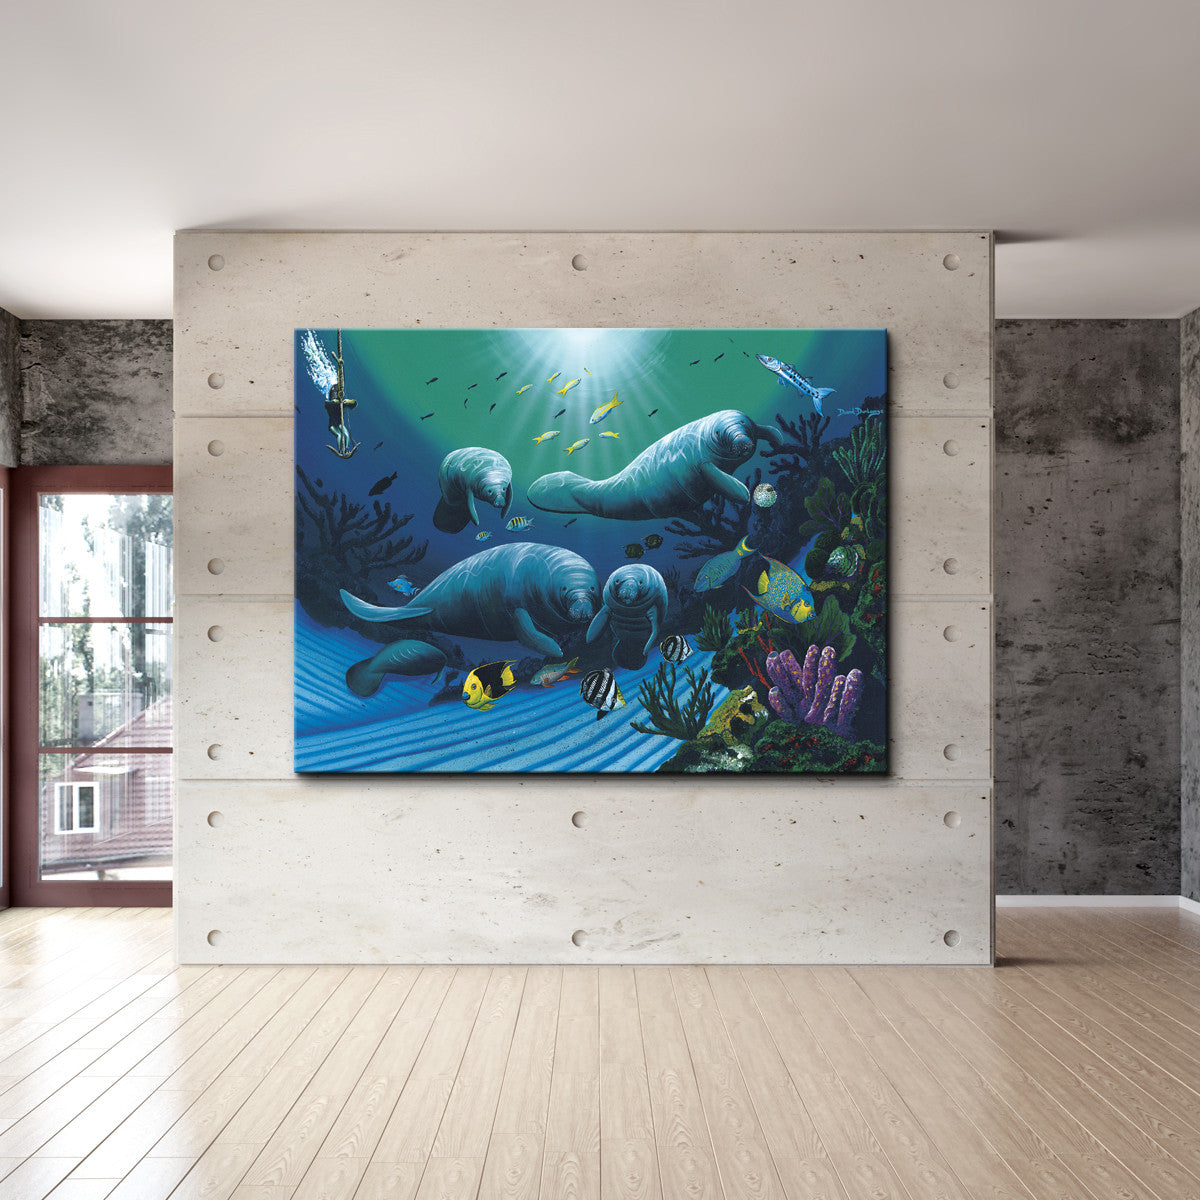 David Dunleavy 'Diving with Art Mckee' Canvas Wall Art